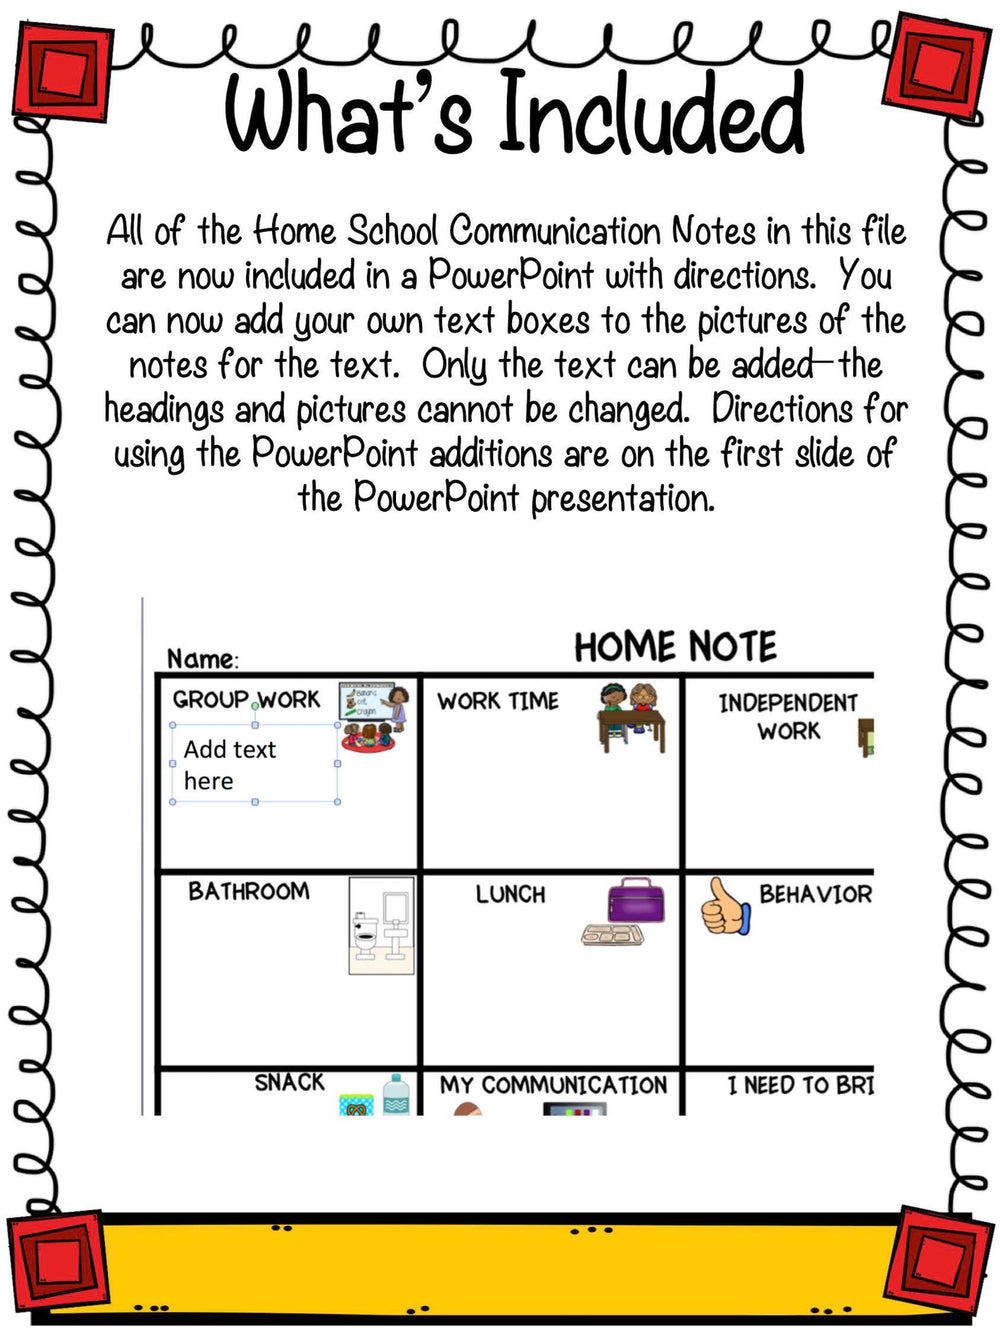 Preschool Special Education Home-School Communication Notes: Editable Included - Autism Classroom Resources